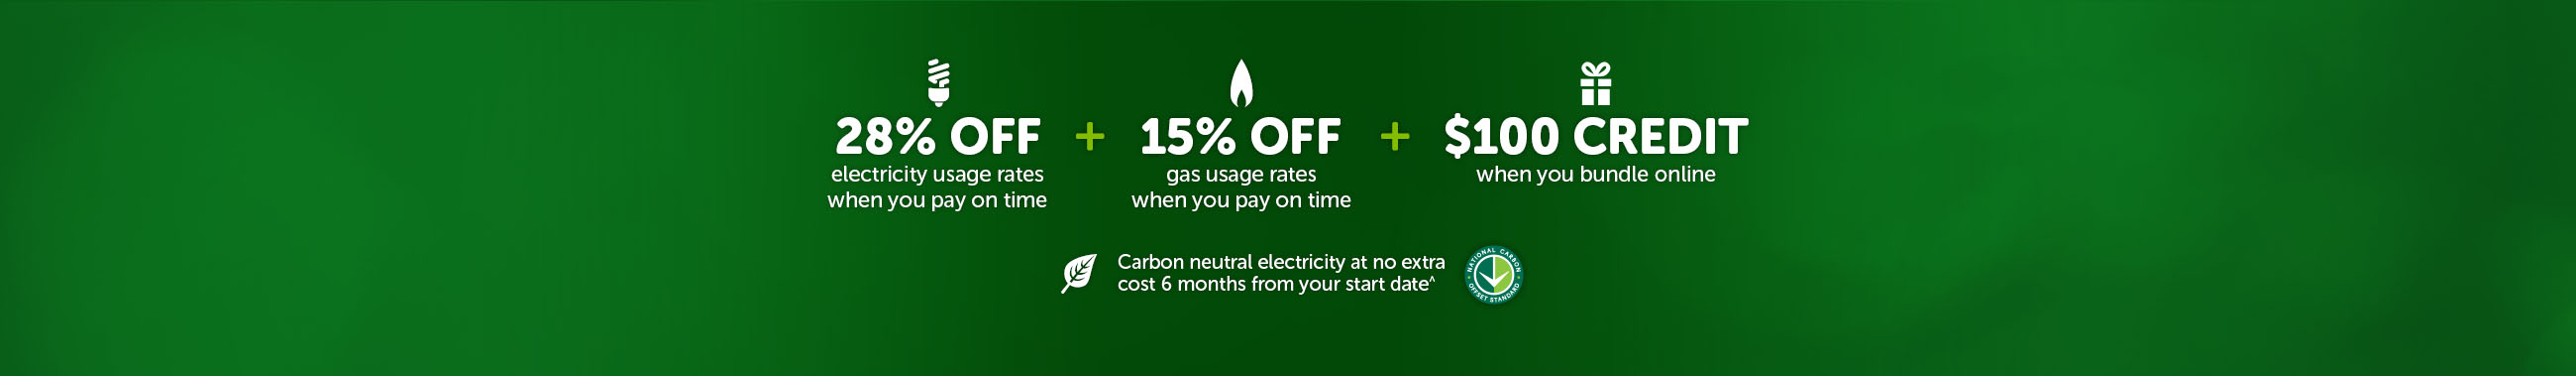 28% off electricity usage rates when you pay on time plus 15% off gas usage rates when you pay on time plus $100 credit when you bundle online and Carbon neutral electricity at no extra cost 6 months from your start date^